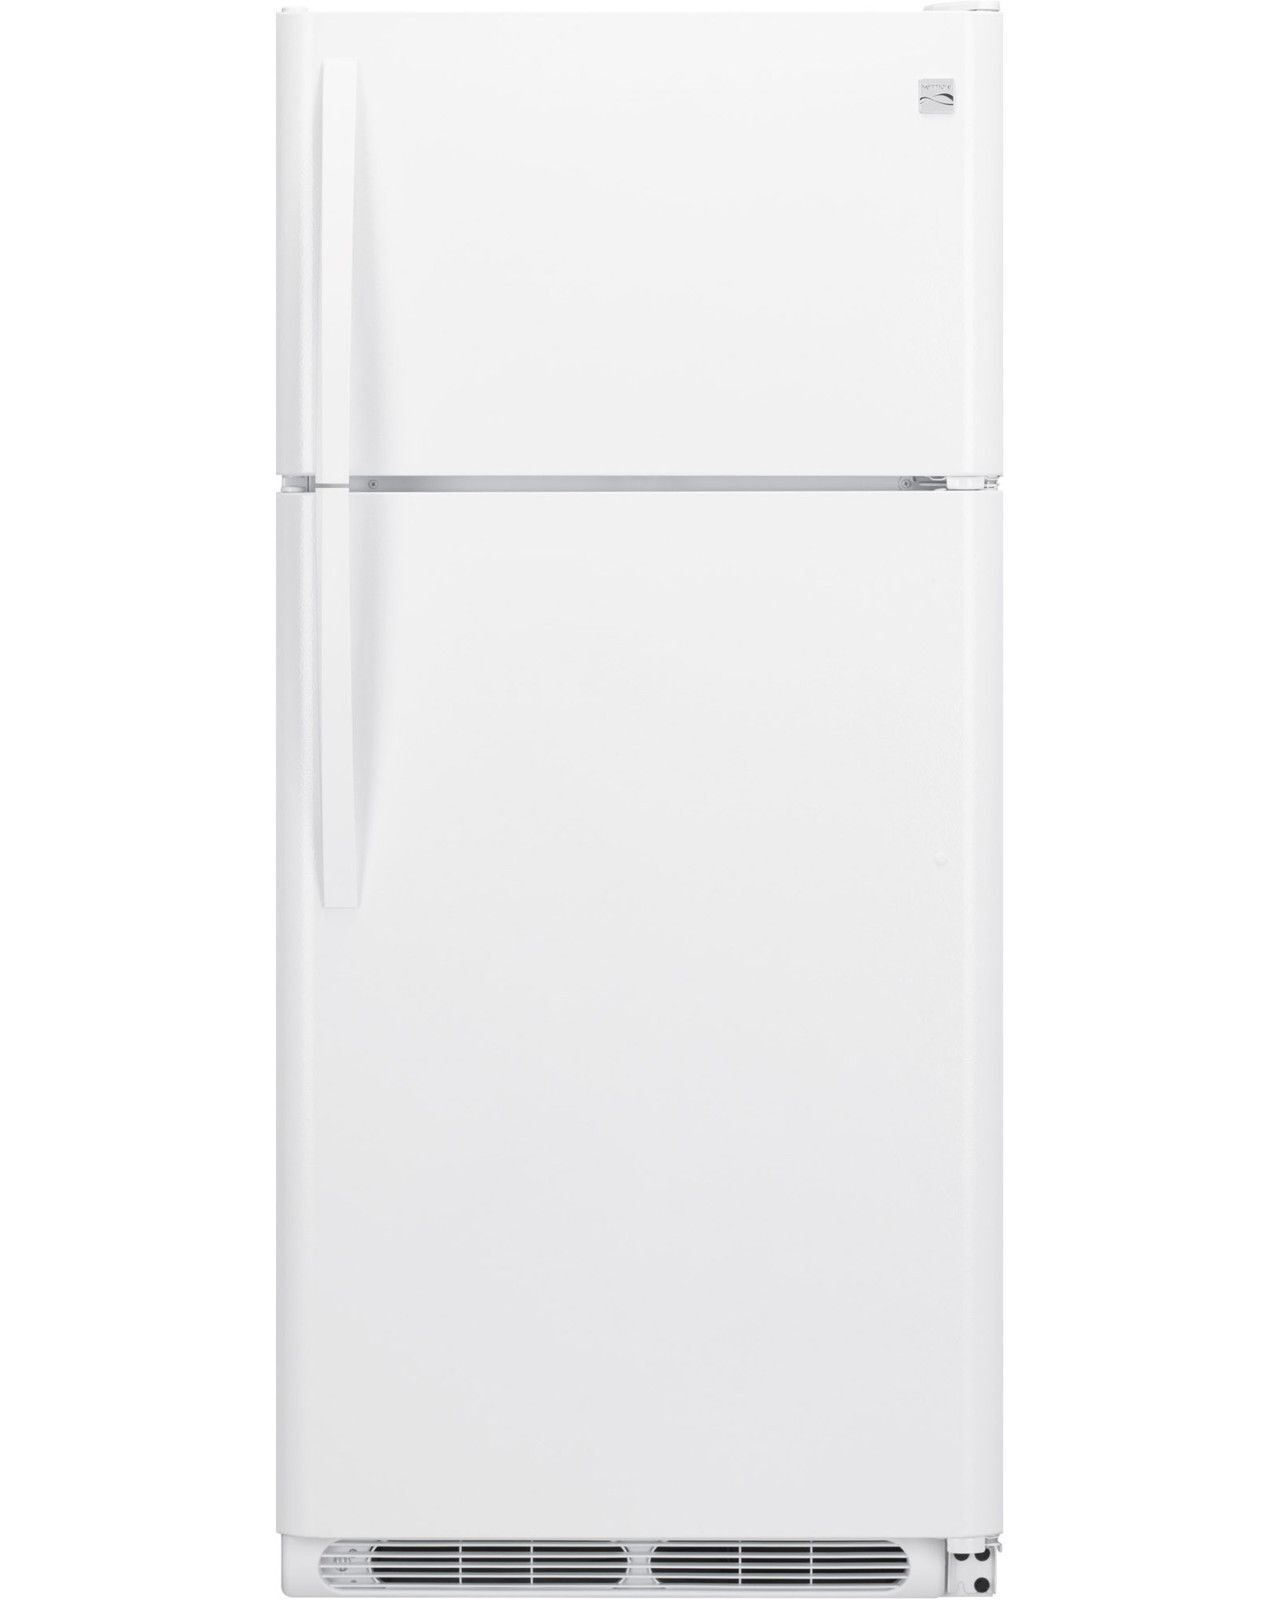 Kenmore 18cu.ft - Top-Freezer Refrigerator with Wire Shelves